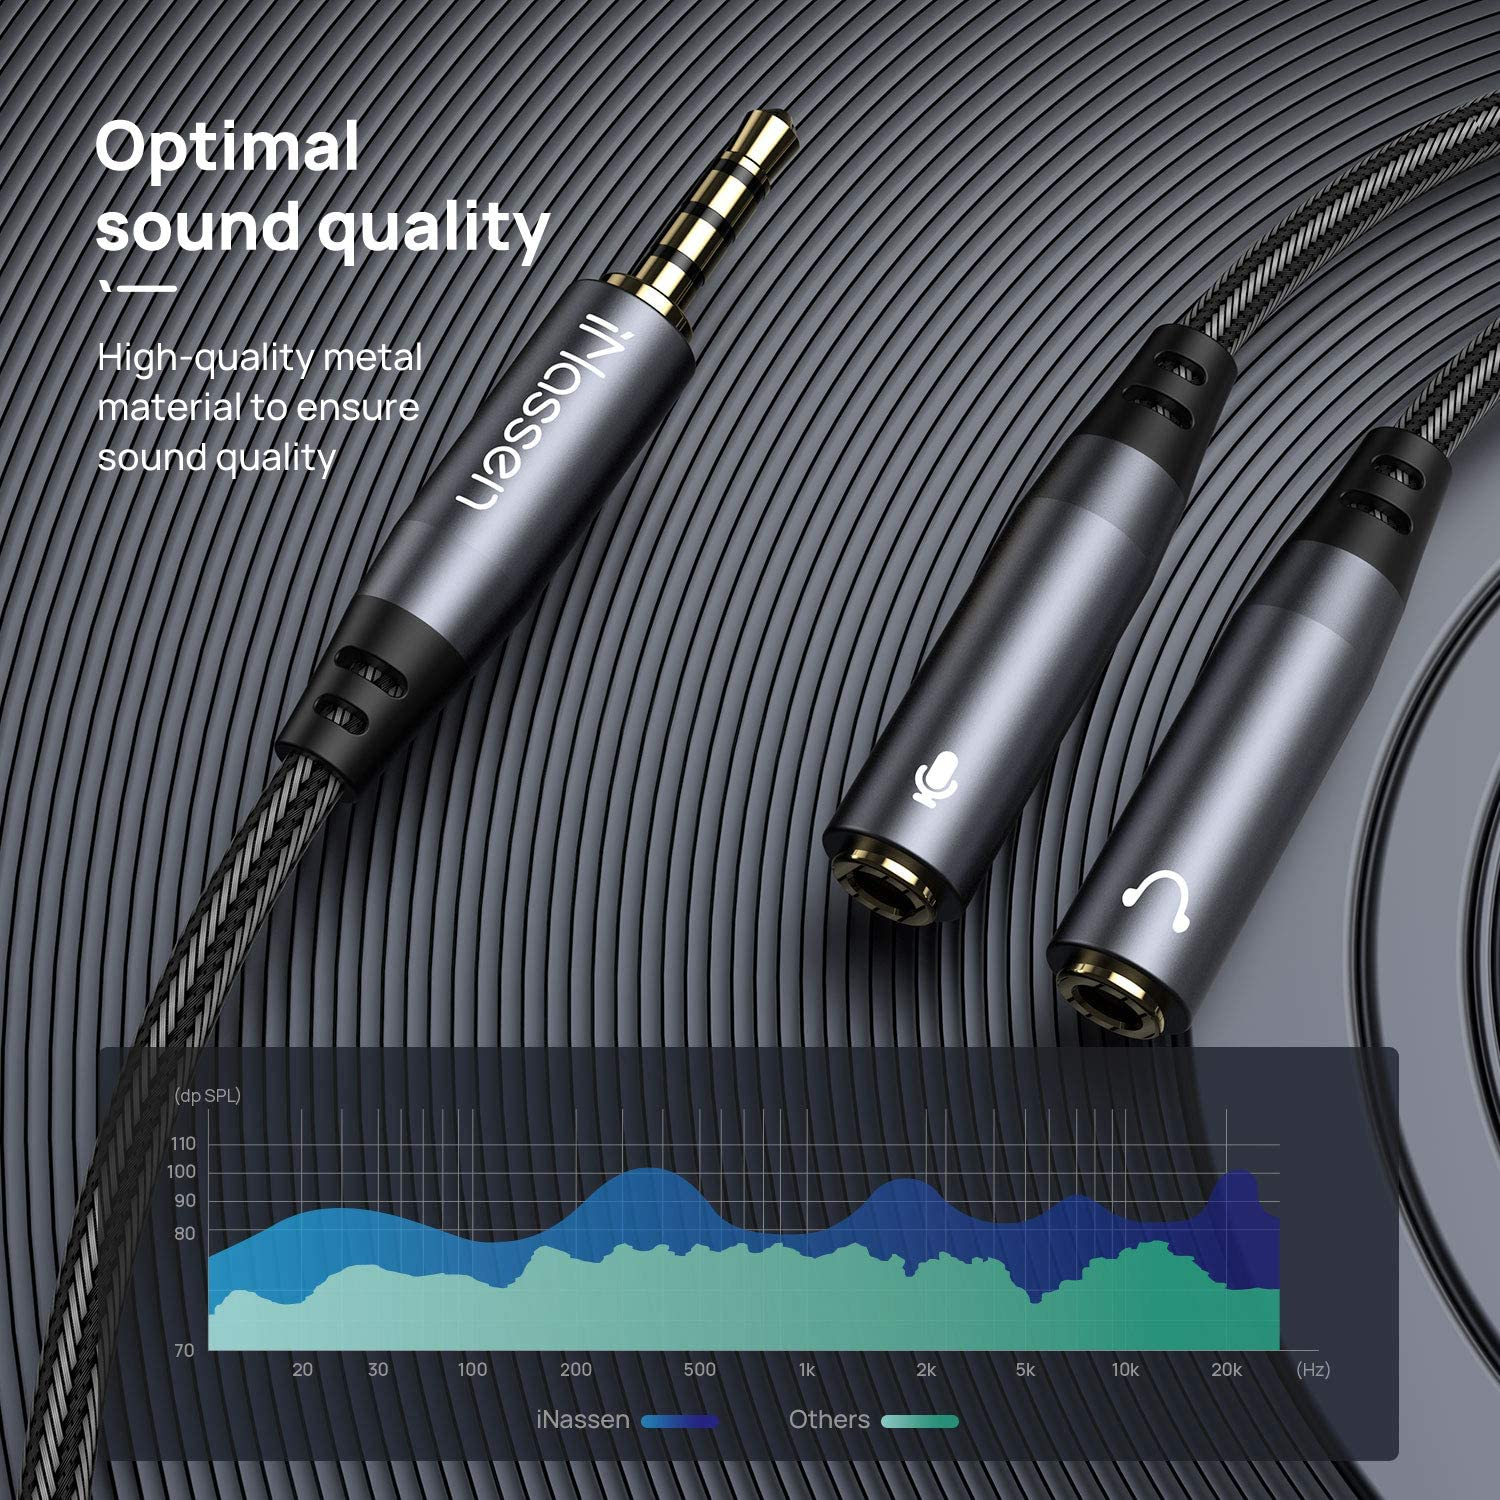 Laptop /& More iNassen Headphone Splitter for PC Gaming Headset with Mic 3.5mm Extension Cable Aux Audio StereoY Splitter Cable Male to 2 Female Headset Splitter for PC Gaming Headset Phone